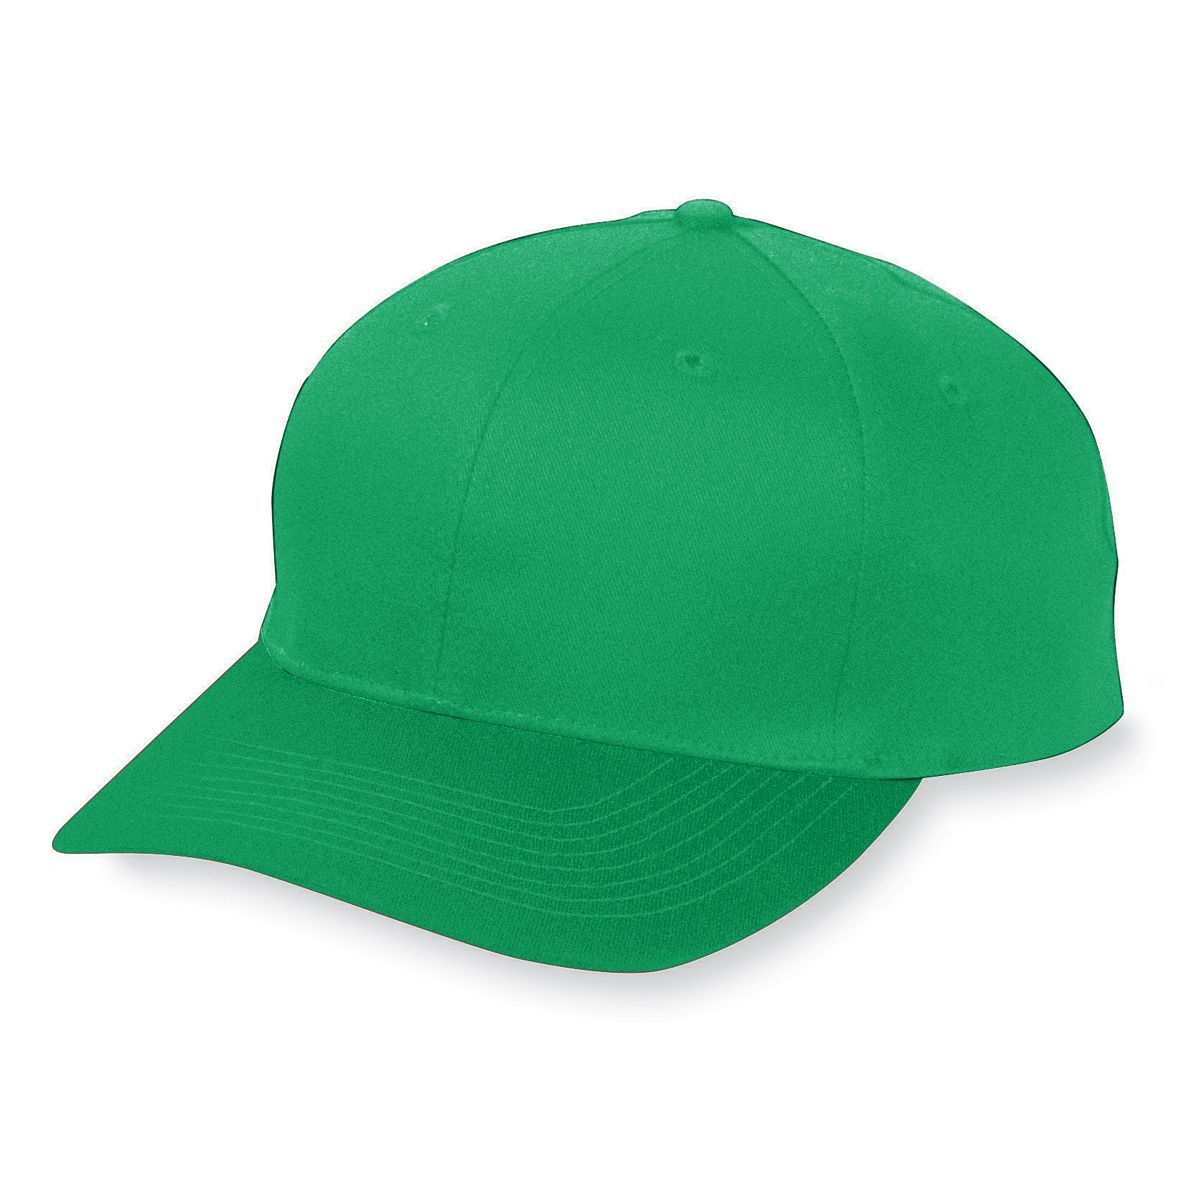 Six-Panel Cotton Twill Low-Profile Cap - KELLY